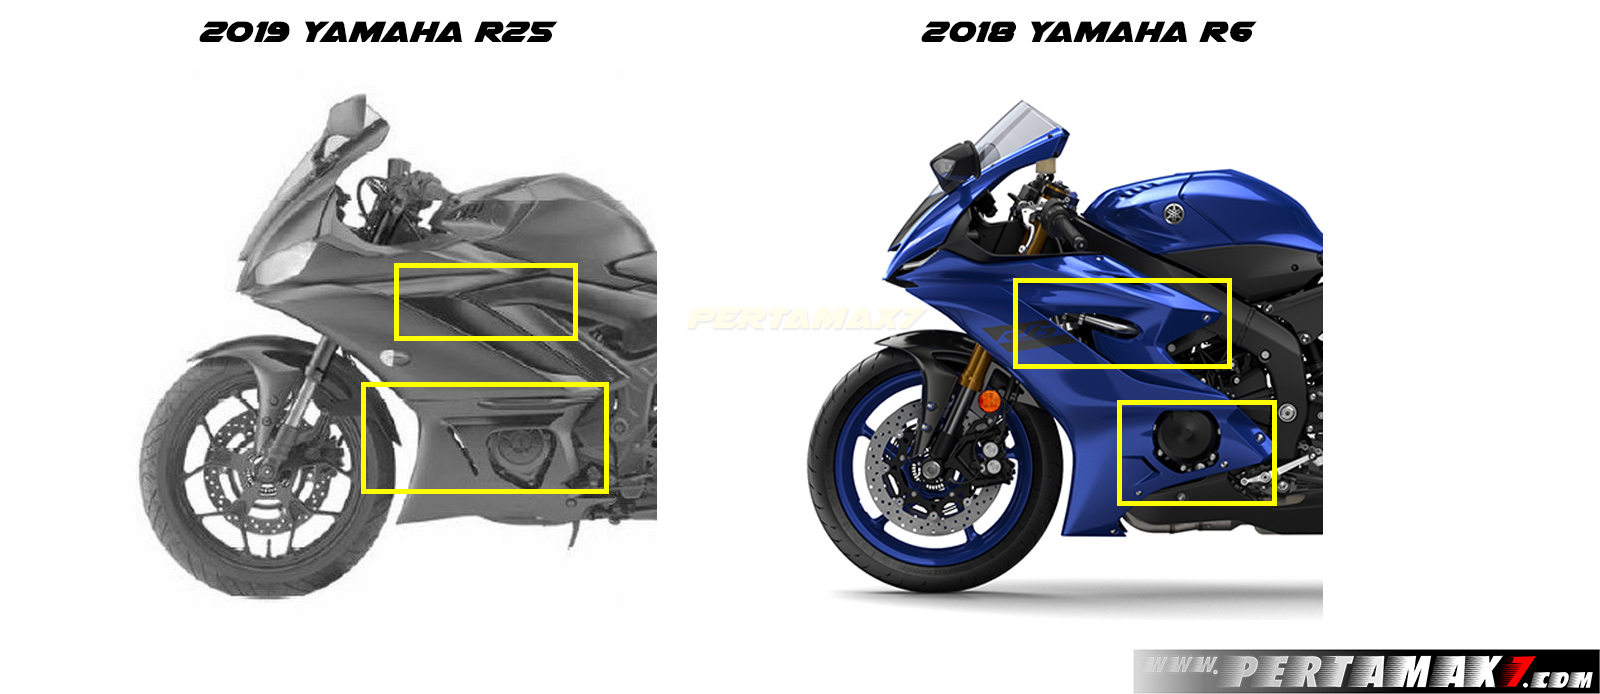 Fairing Kiri amaha R25 Faeclift 2019 VS Yamaha R6 MY2018